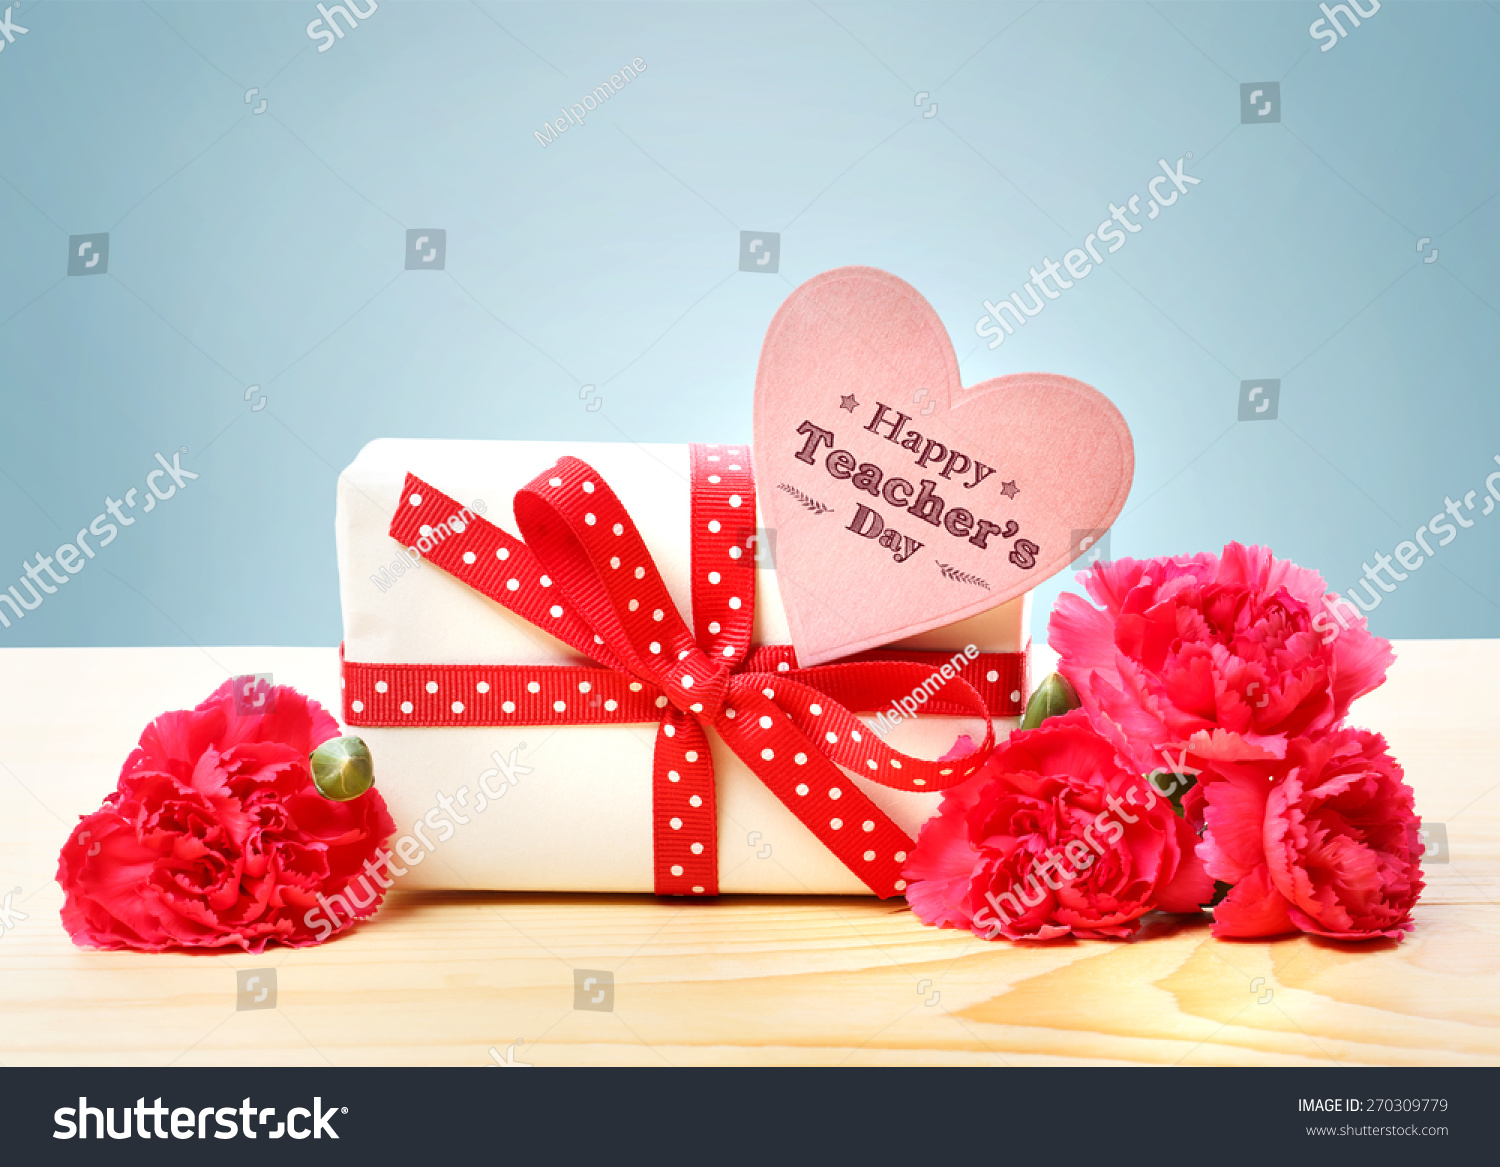 Happy teachers day message small gift stock photo 270309779 happy teachers day message with a small gift box and pink carnations kristyandbryce Image collections